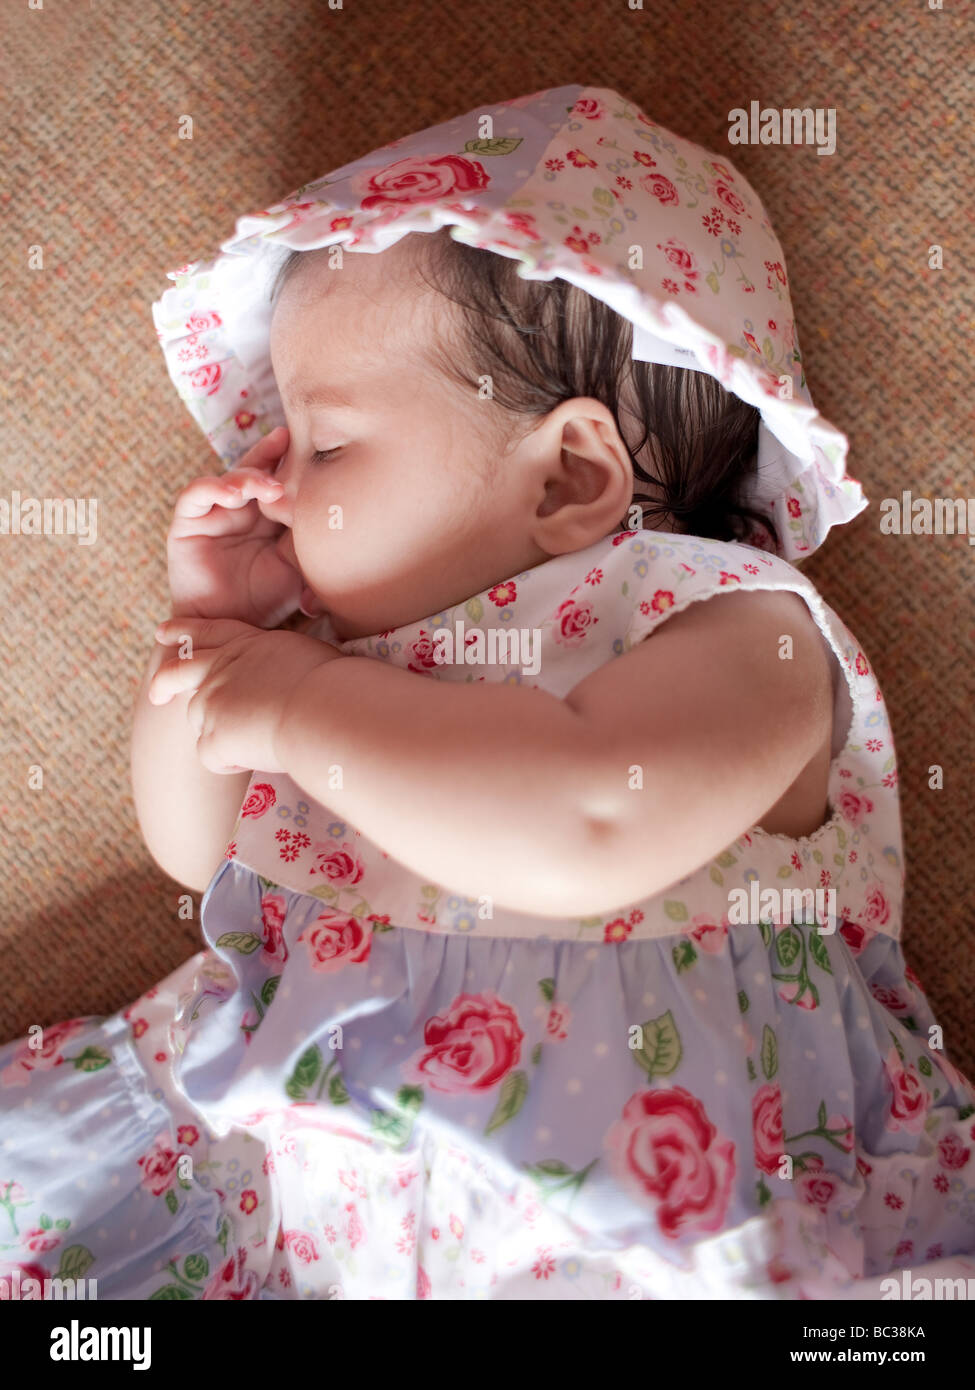 3 month old baby sleeps sucking her thumb - Stock Image